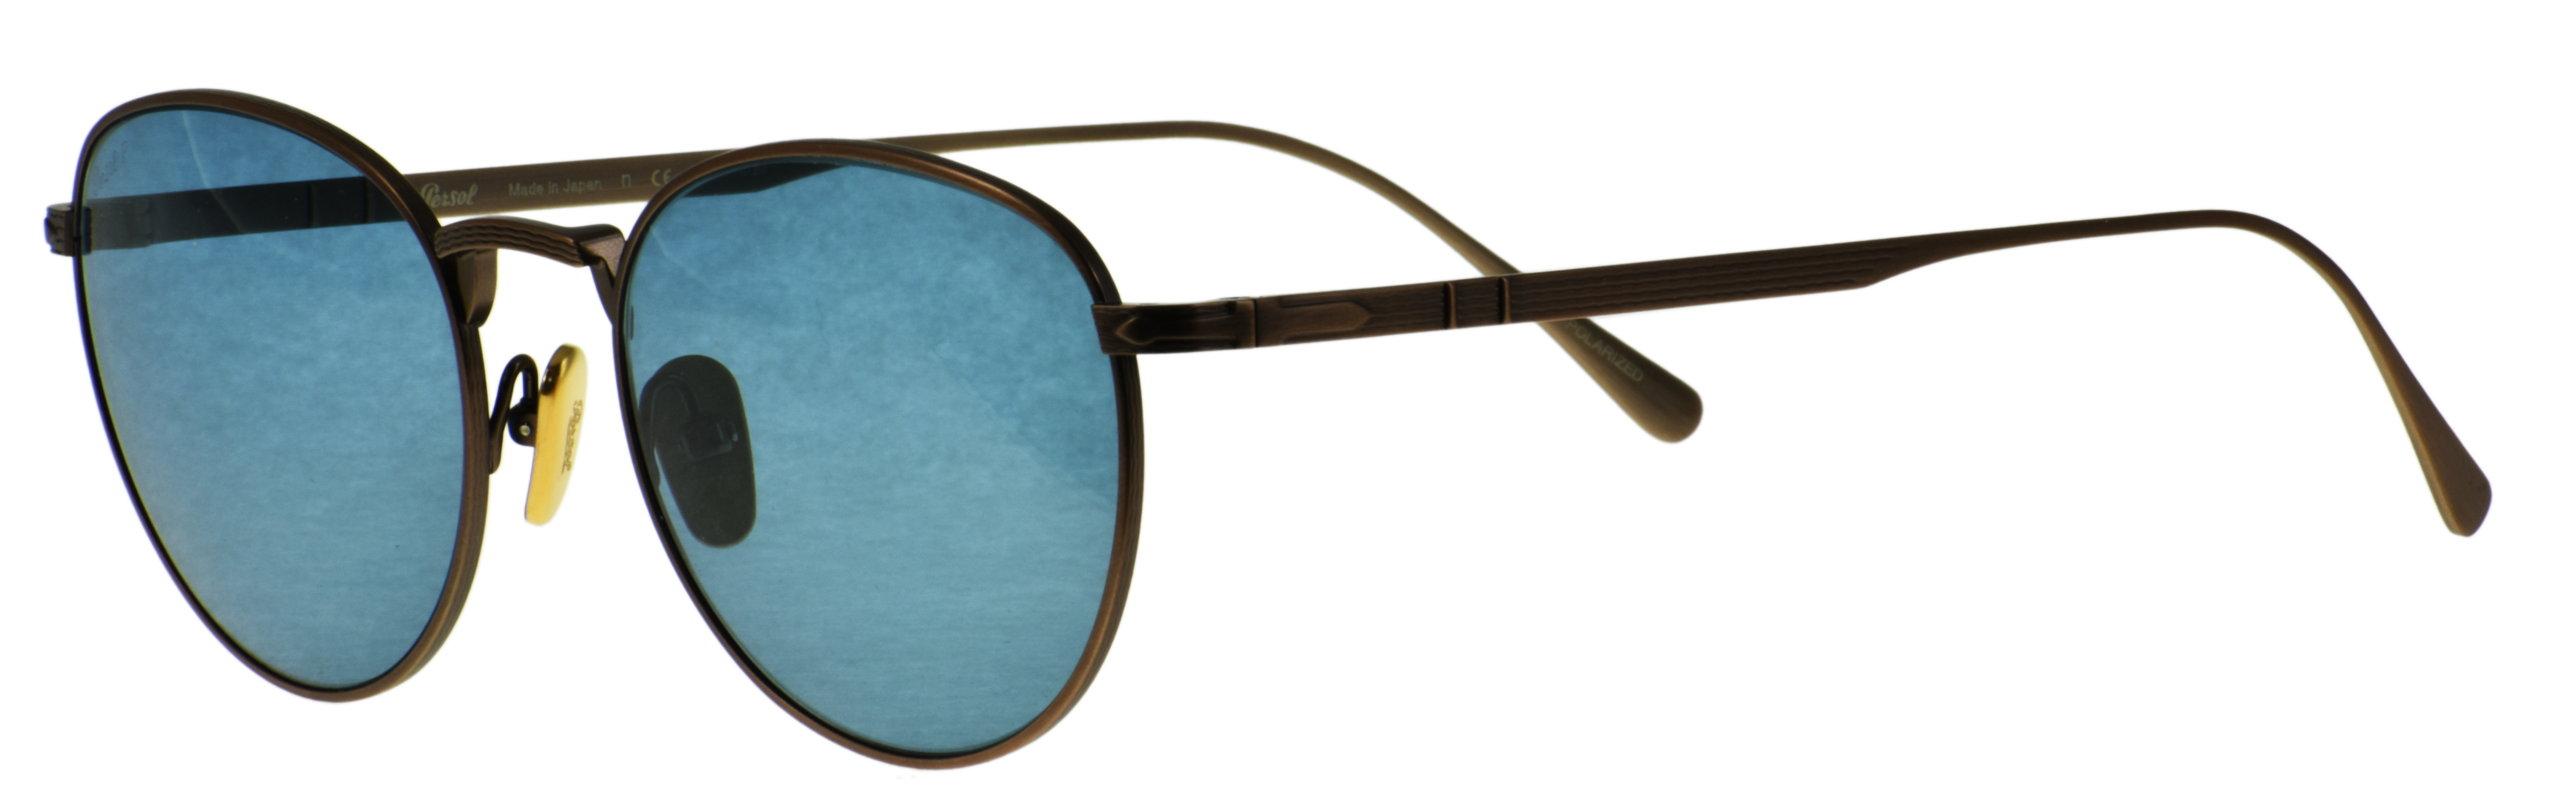 Persol 5002-ST 8003P1 ¥57,000 51 02